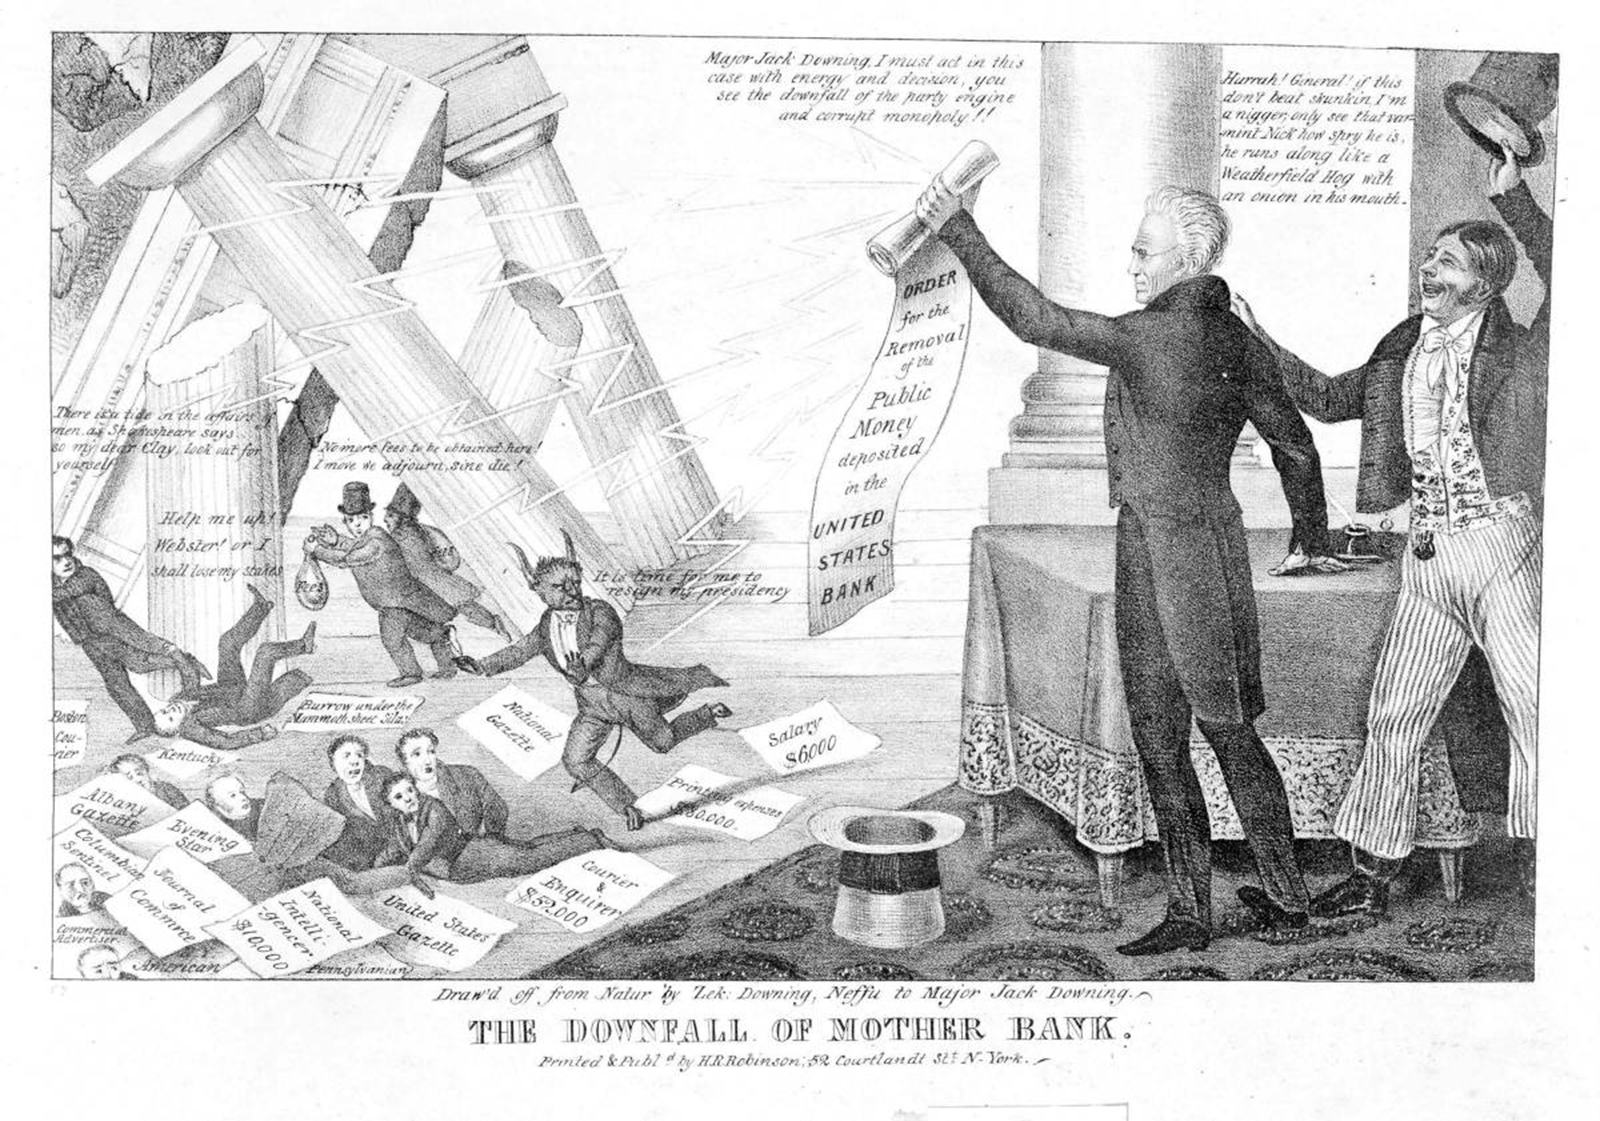 A 19th century political cartoon that references President Jackson's successful efforts to destroy the Second Bank of the United States.